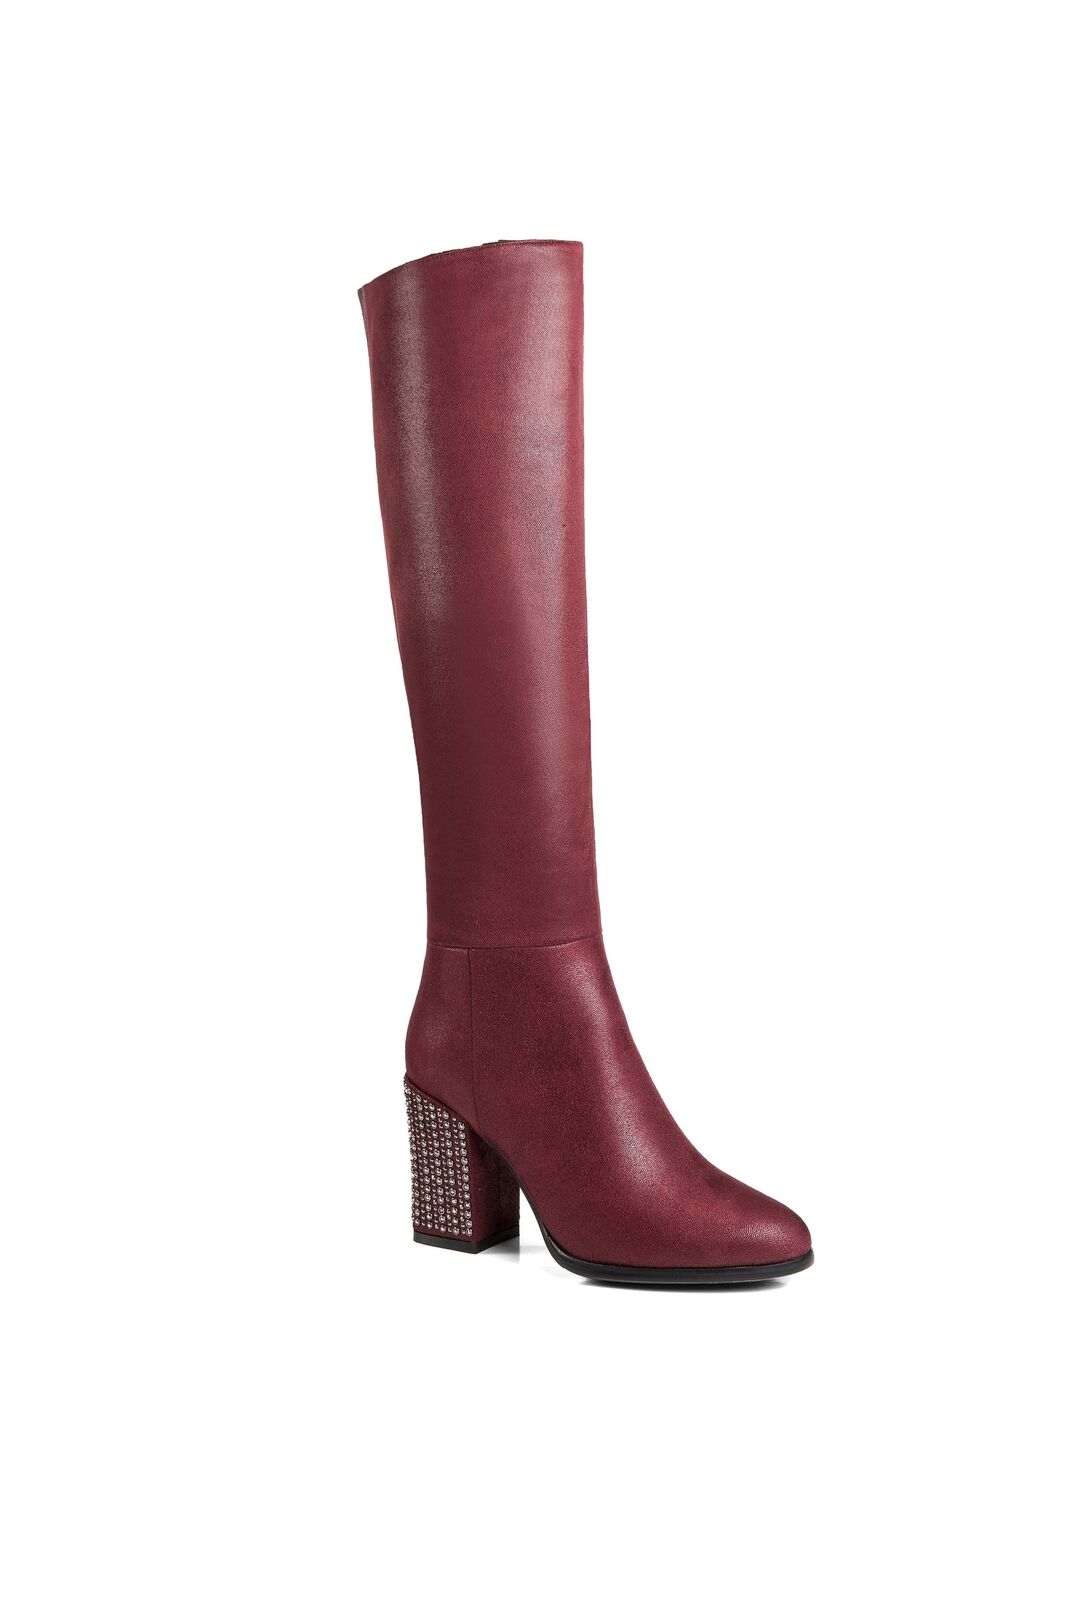 Ann Creek Mujer 'bailey' Metálico Slouch Slouch Slouch Eje y Studded Heel botas  oferta especial